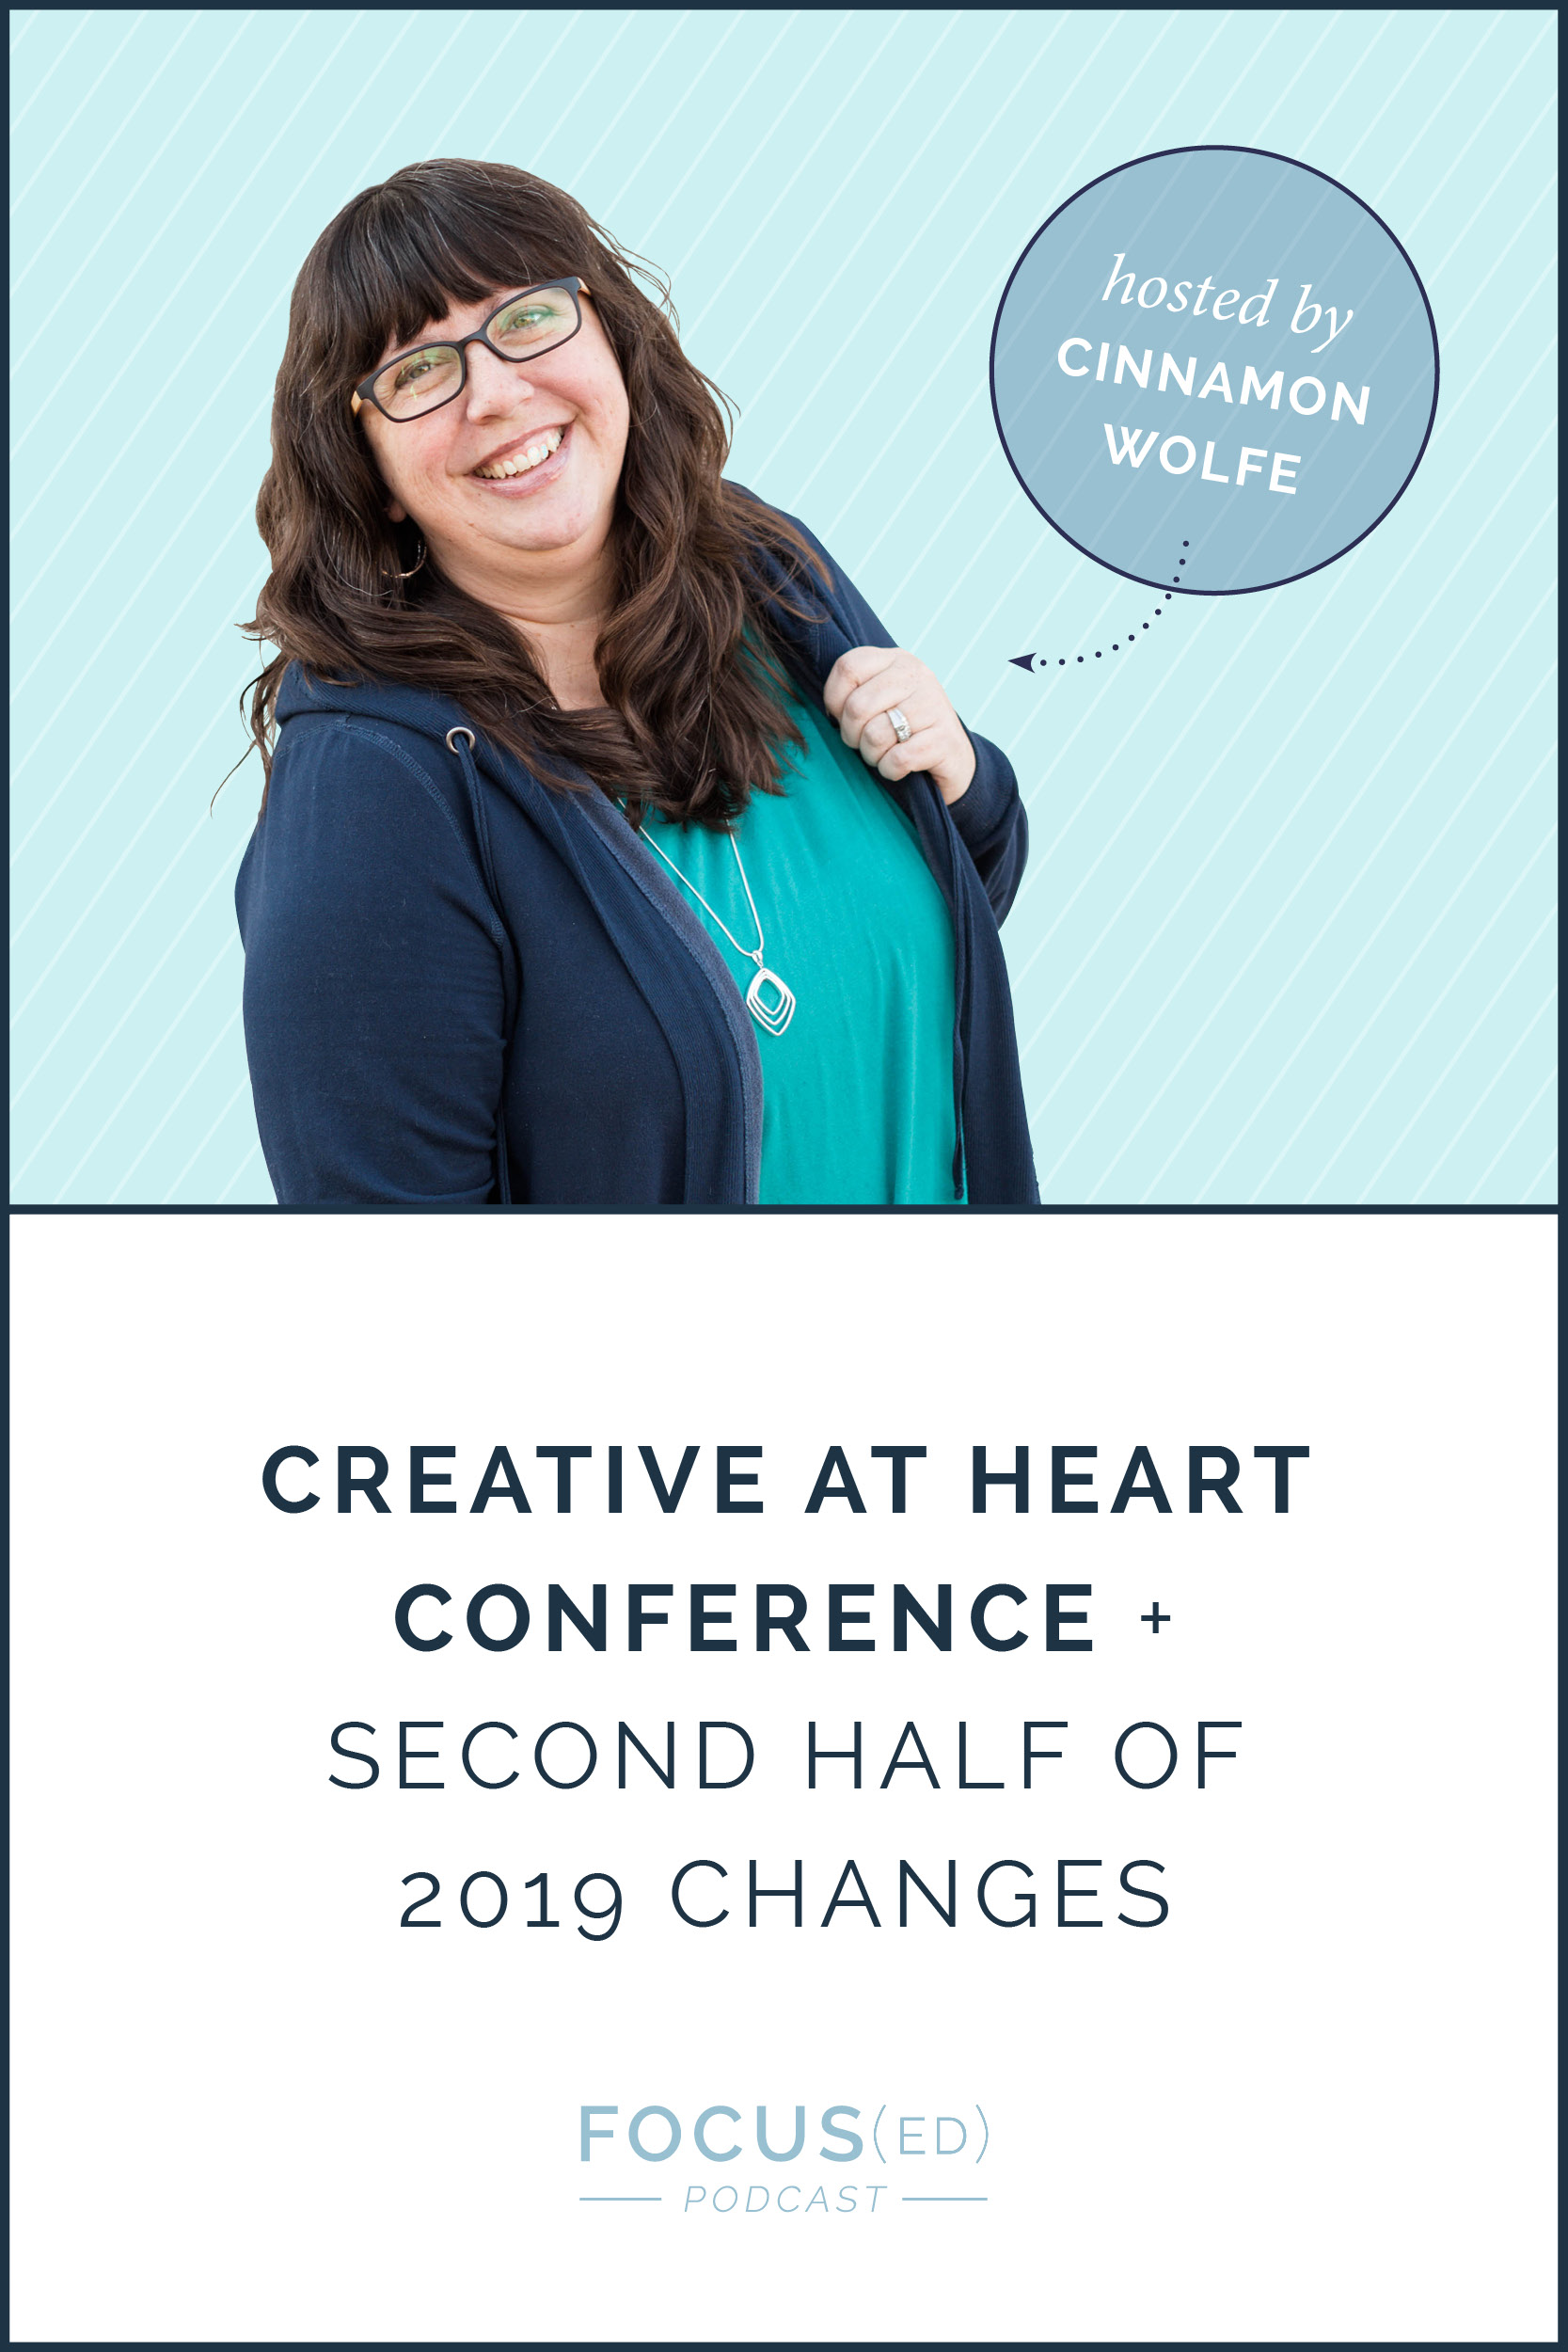 Focused blog - Creative at Heart + 2019 Updates2.jpg